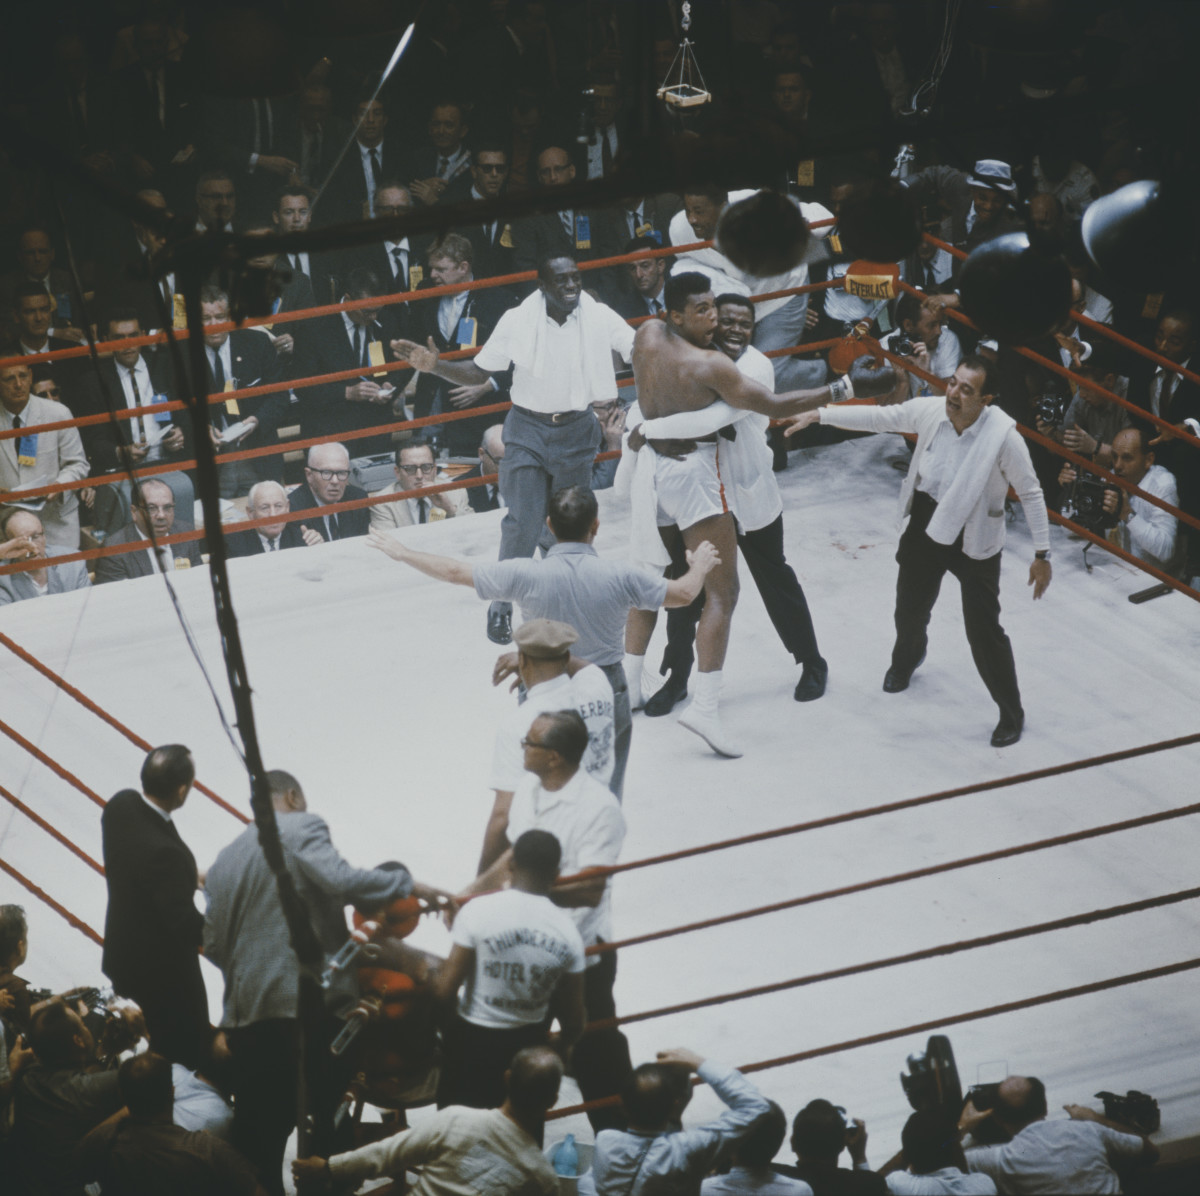 Muhammad Ali is congratulated by his cornerman, Drew Bundini Brown and trainer Angelo Dundee (right) after beating Sonny Liston to become the Heavyweight Champion of the World in Miami Beach, Florida on February 25, 1964